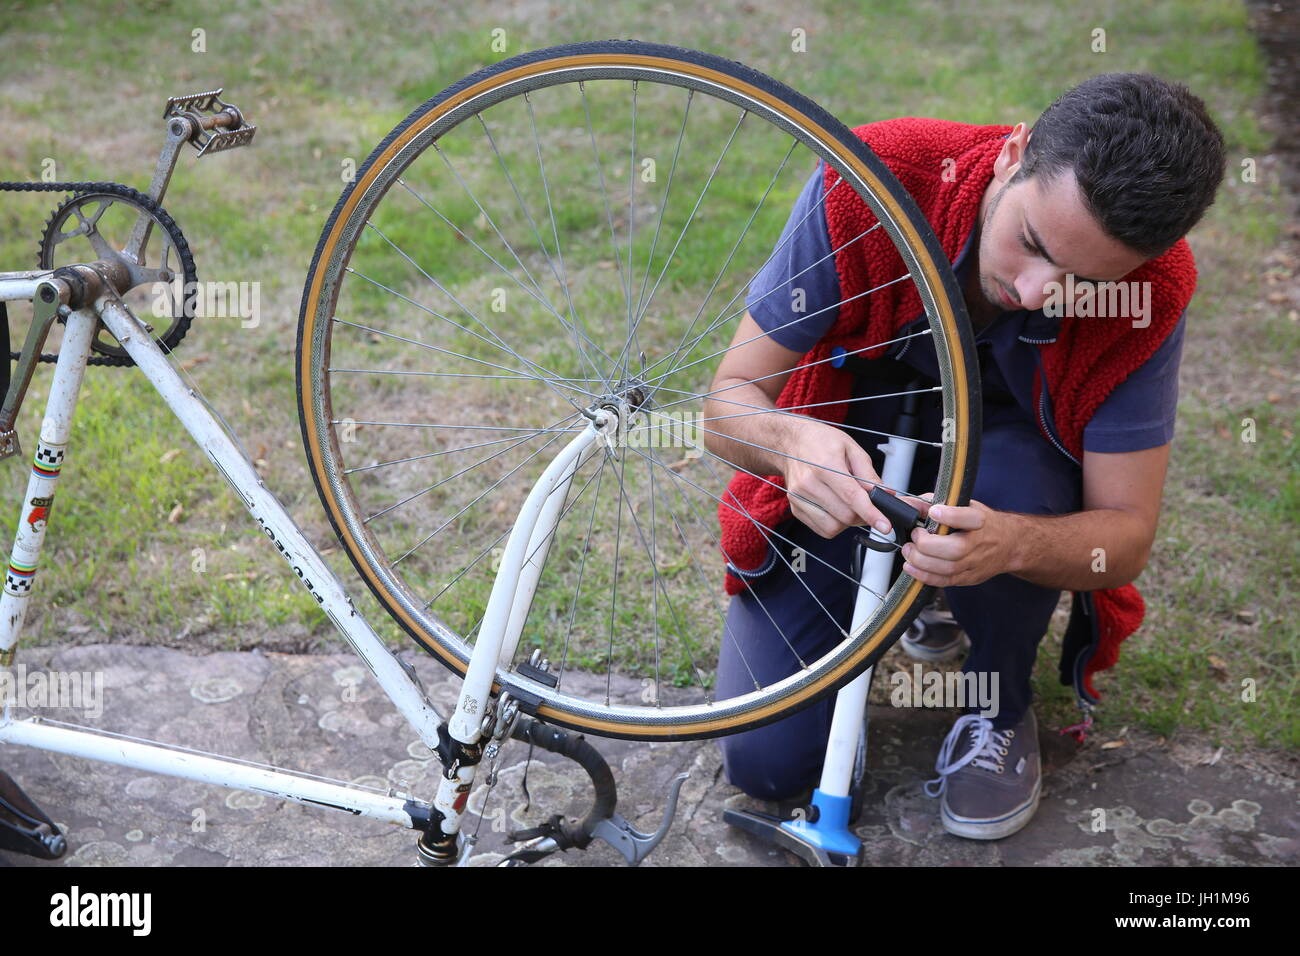 Young man inflating a bicycle tyre. France. - Stock Image